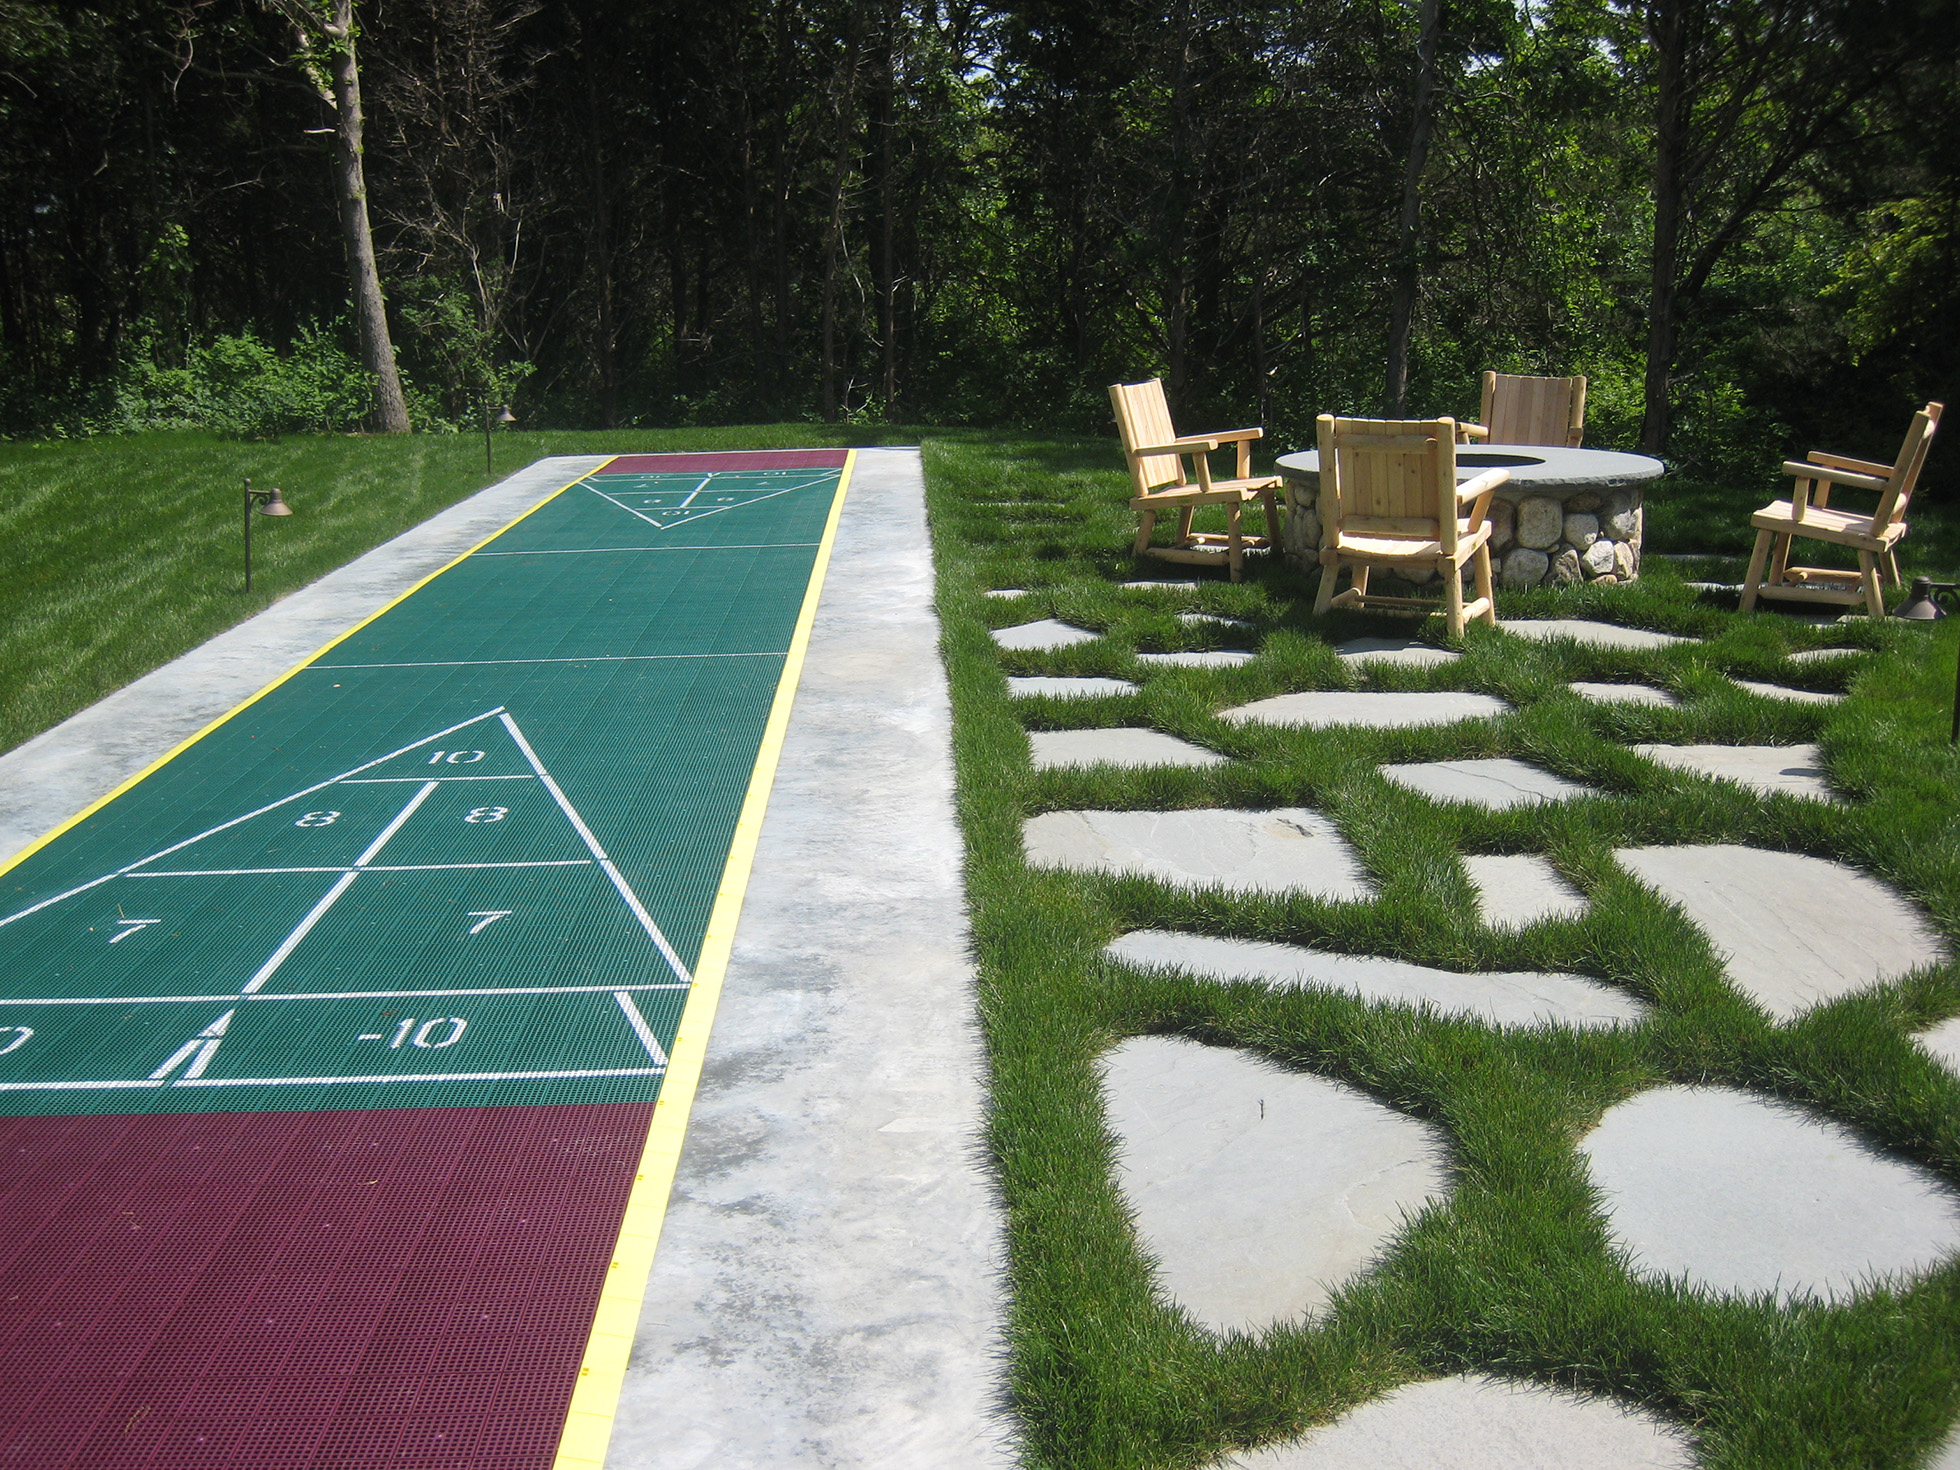 Back yard shuffle board beside fire pit with chairs